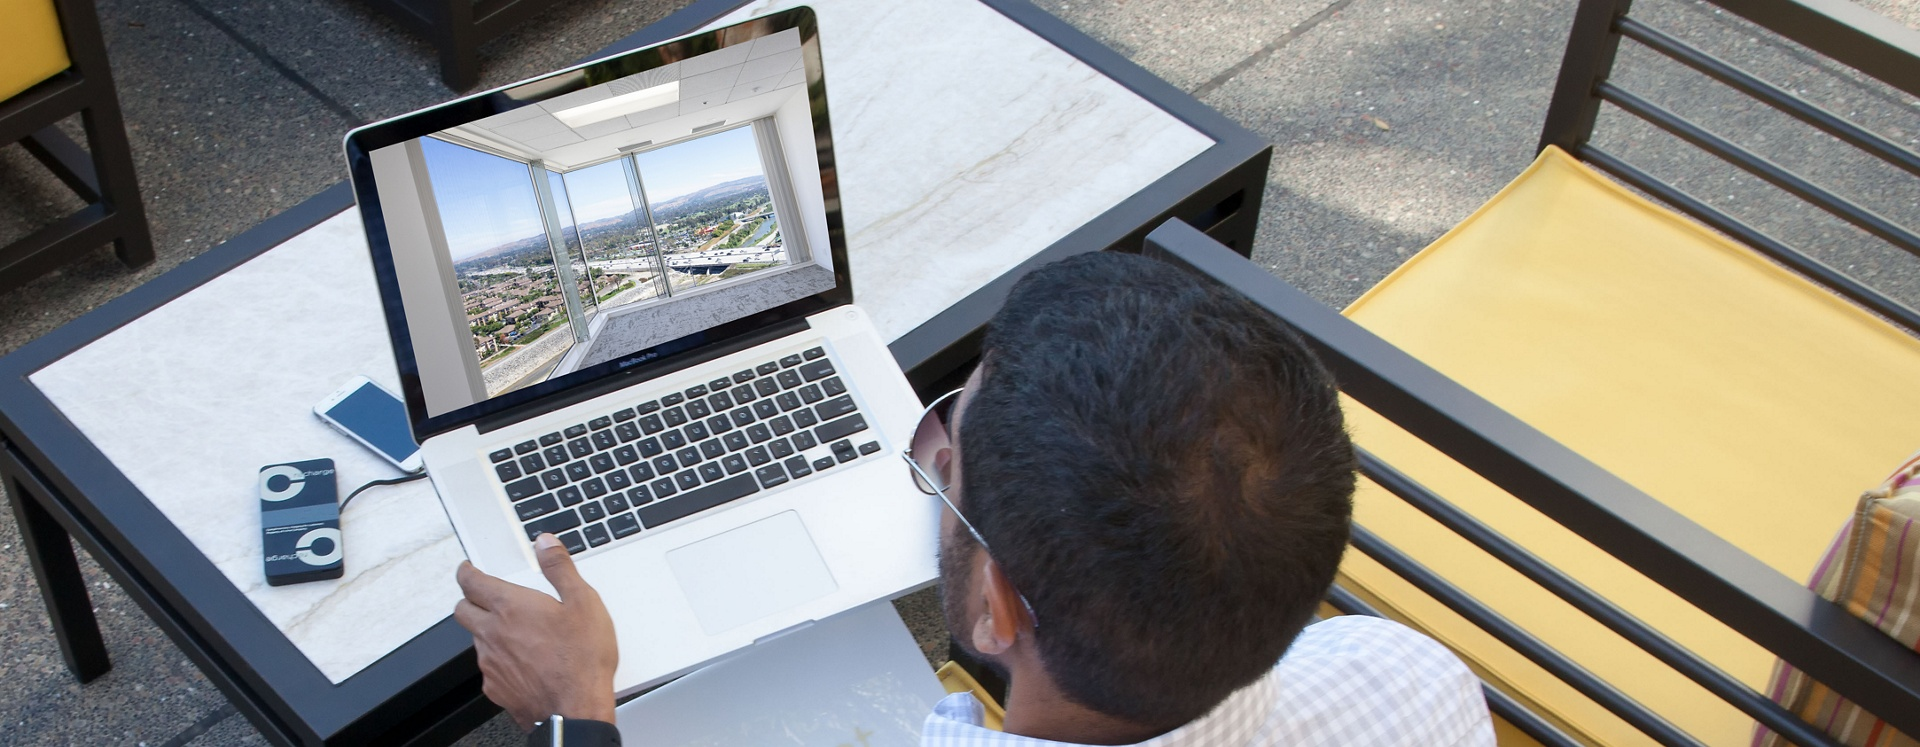 Image of man on laptop viewing a virtual tour for an Irvine Company Office.